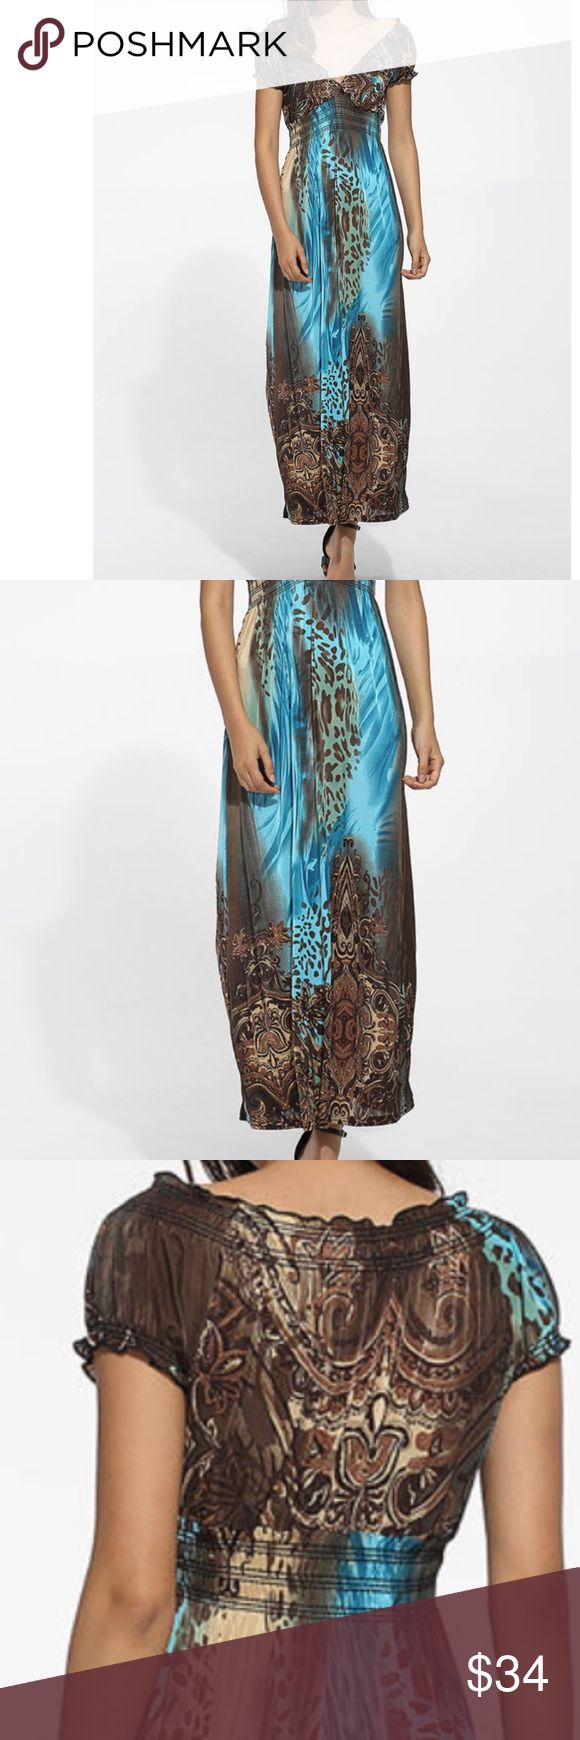 BOHO Teal and Brown Maxi Dress - NWOT Stunning and playful in design. This maxi makes you feline one of a kind.  Stylish, fashionable and always desirable -Bohemian Maxi Dress  Lightweight breathable fabric.   Elastic waist, gathered to flatter. Sexy stretch, elastic neckline, easy to wear on the shoulders or off.   This dress was made to showoff your fabulous figure with this wildly fun and flirty pattern in colors of teal blue and brown Dresses Maxi